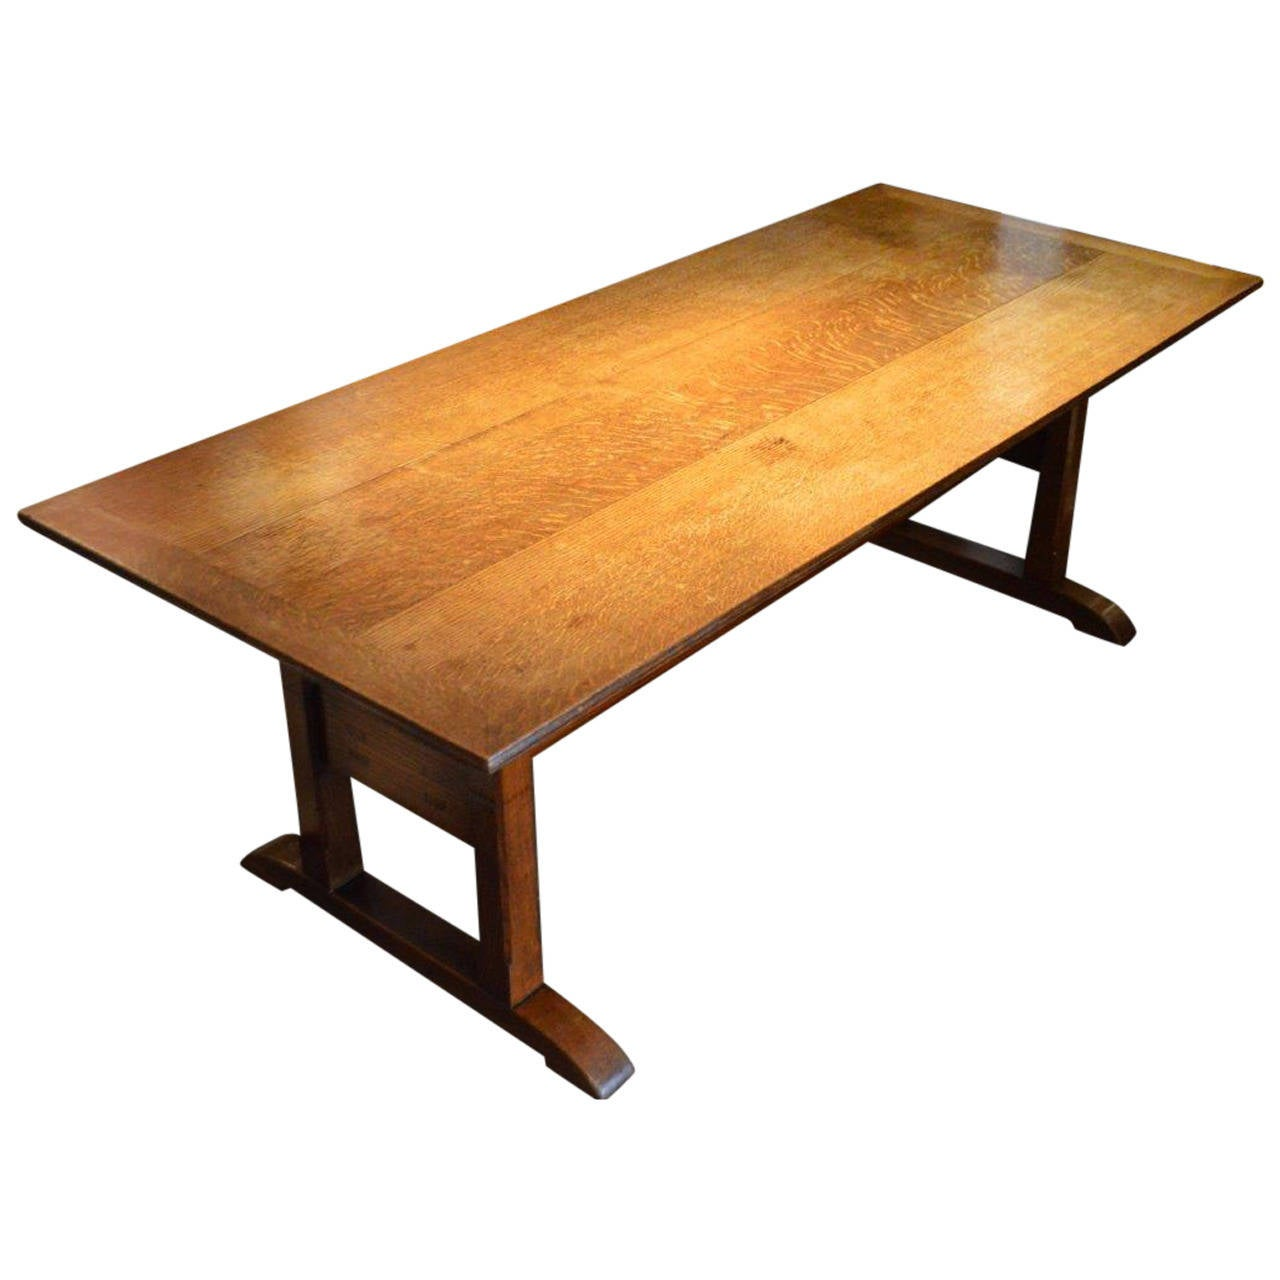 Rare Oak Arts and Crafts Period Dining Table by Arthur  : 2139722l from www.1stdibs.com size 1280 x 1280 jpeg 89kB